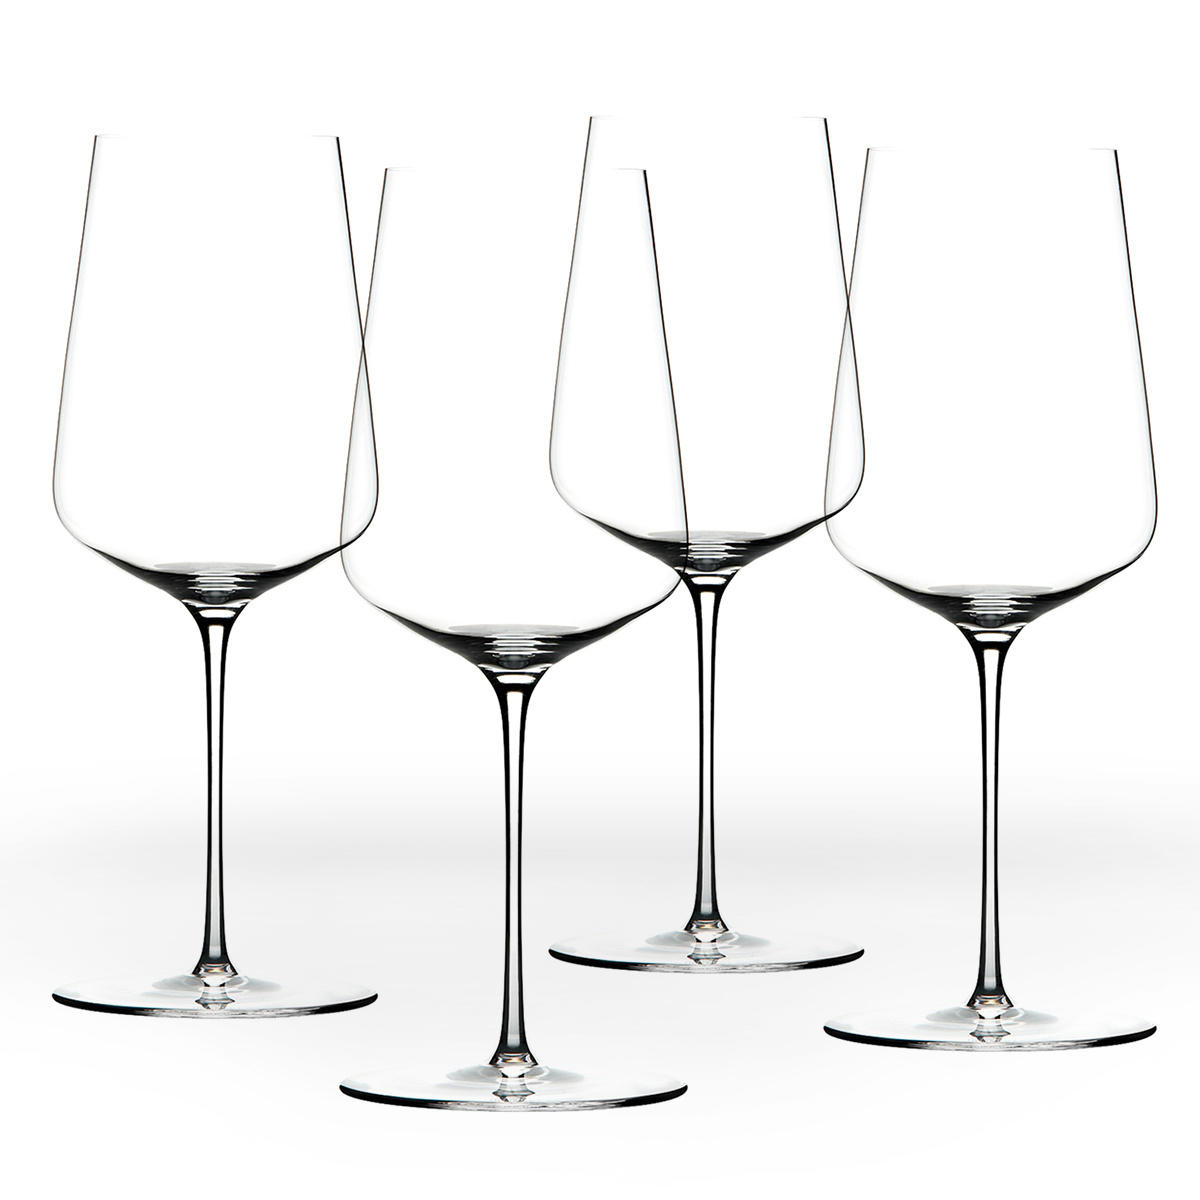 Zalto denk'art universal glass